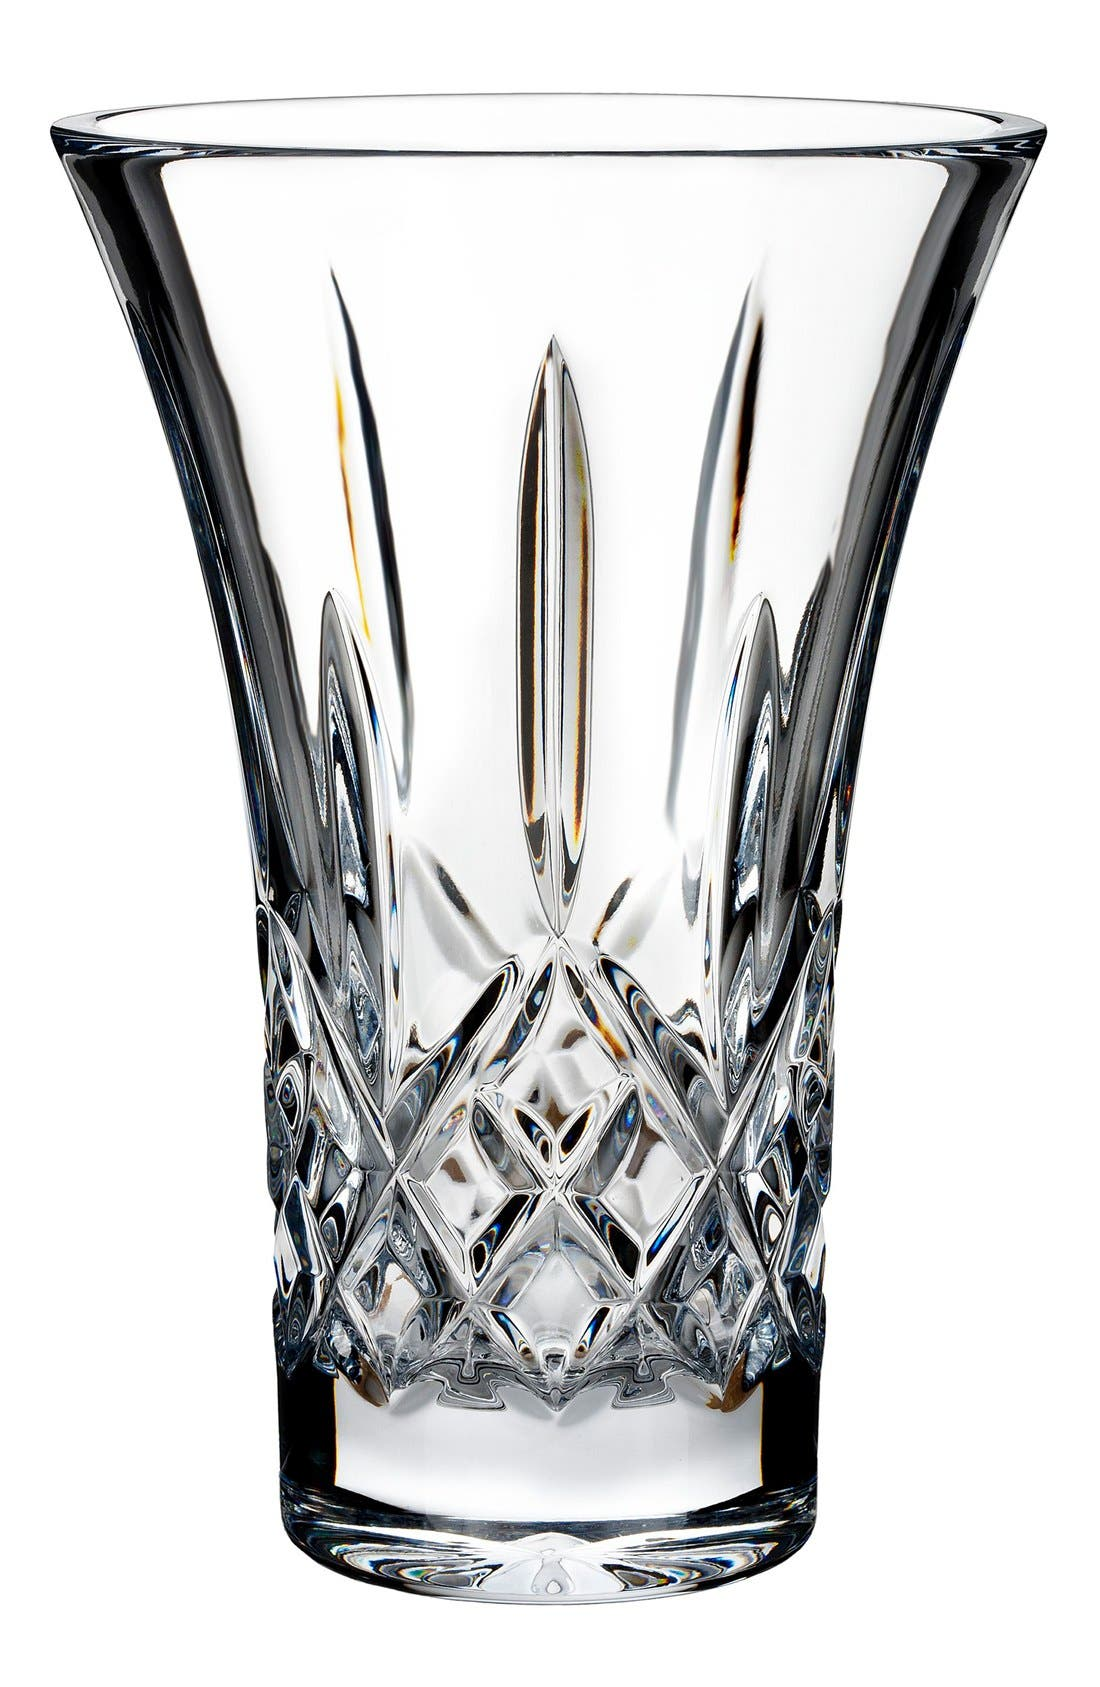 Main Image - Waterford 'Lismore' Lead Crystal Flared Vase